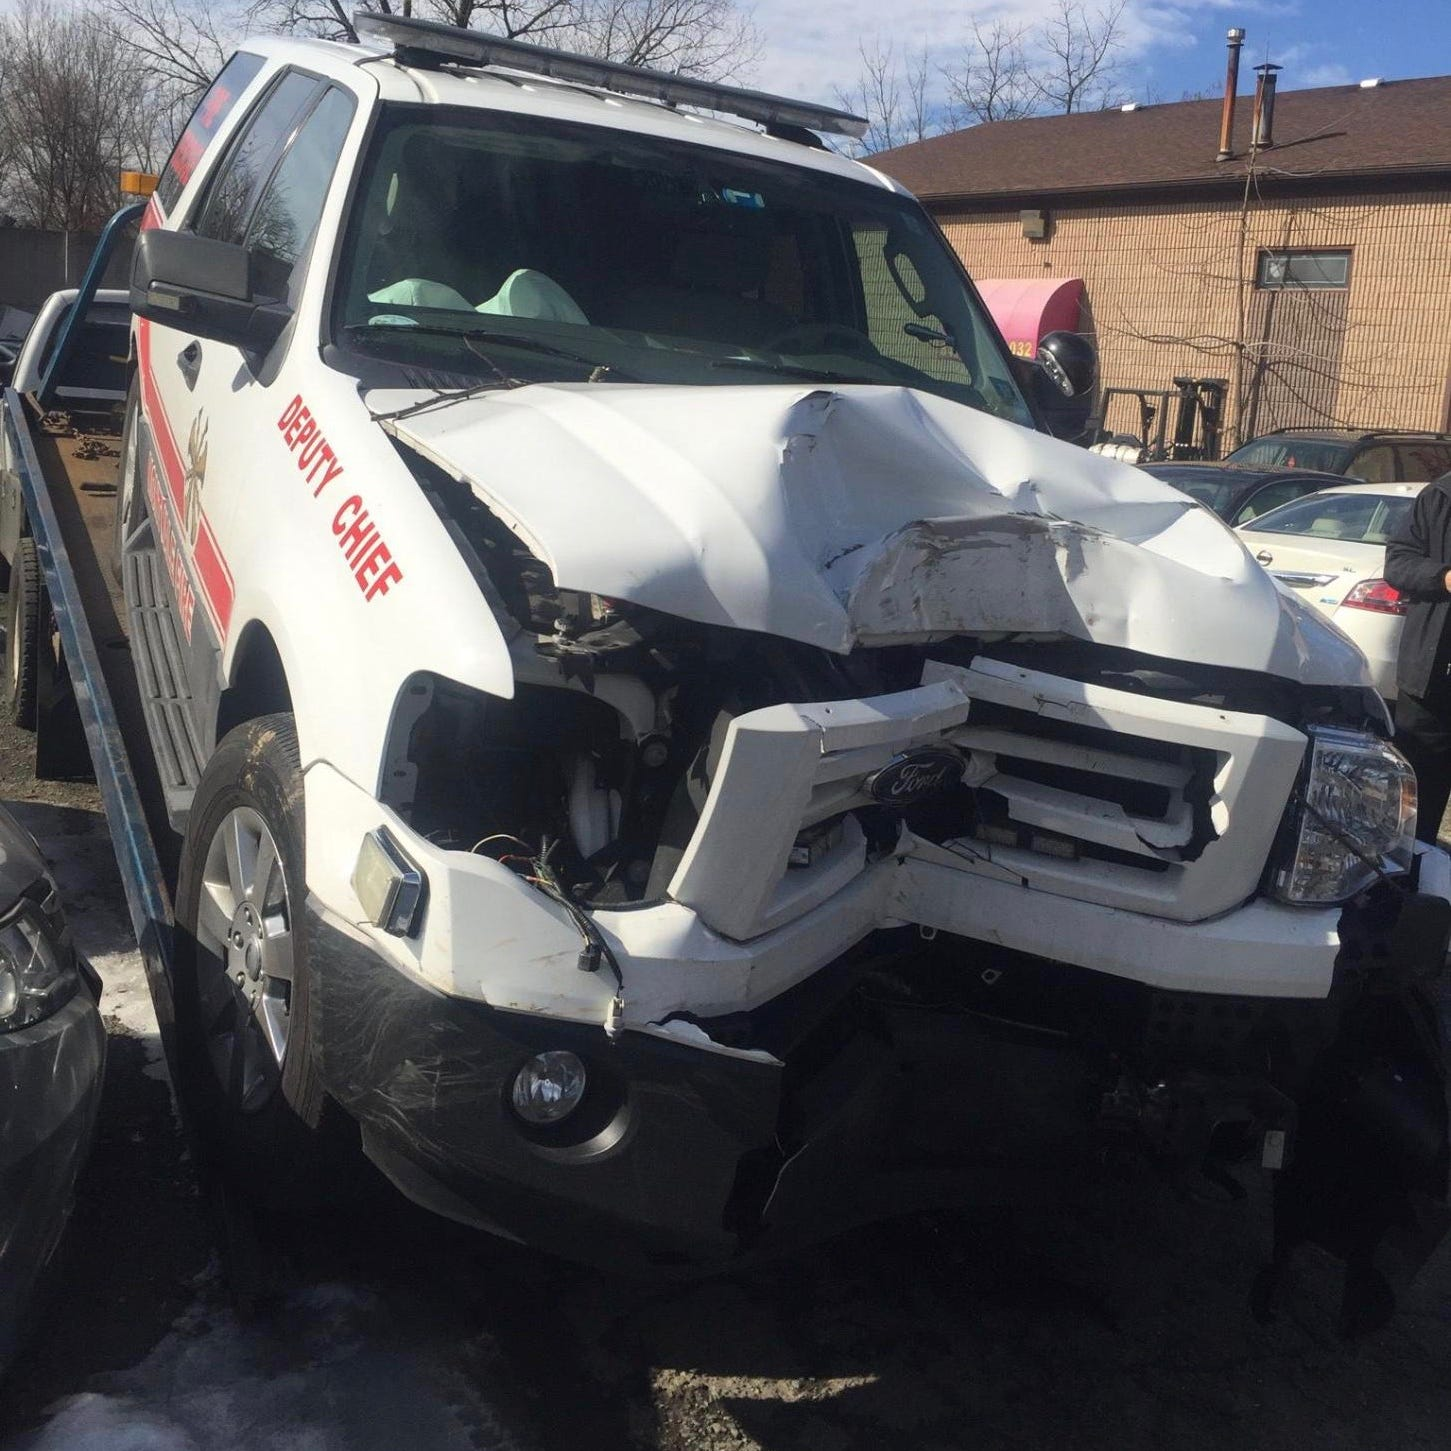 Montvale deputy fire chief drunkenly crashes department SUV into tree, police say